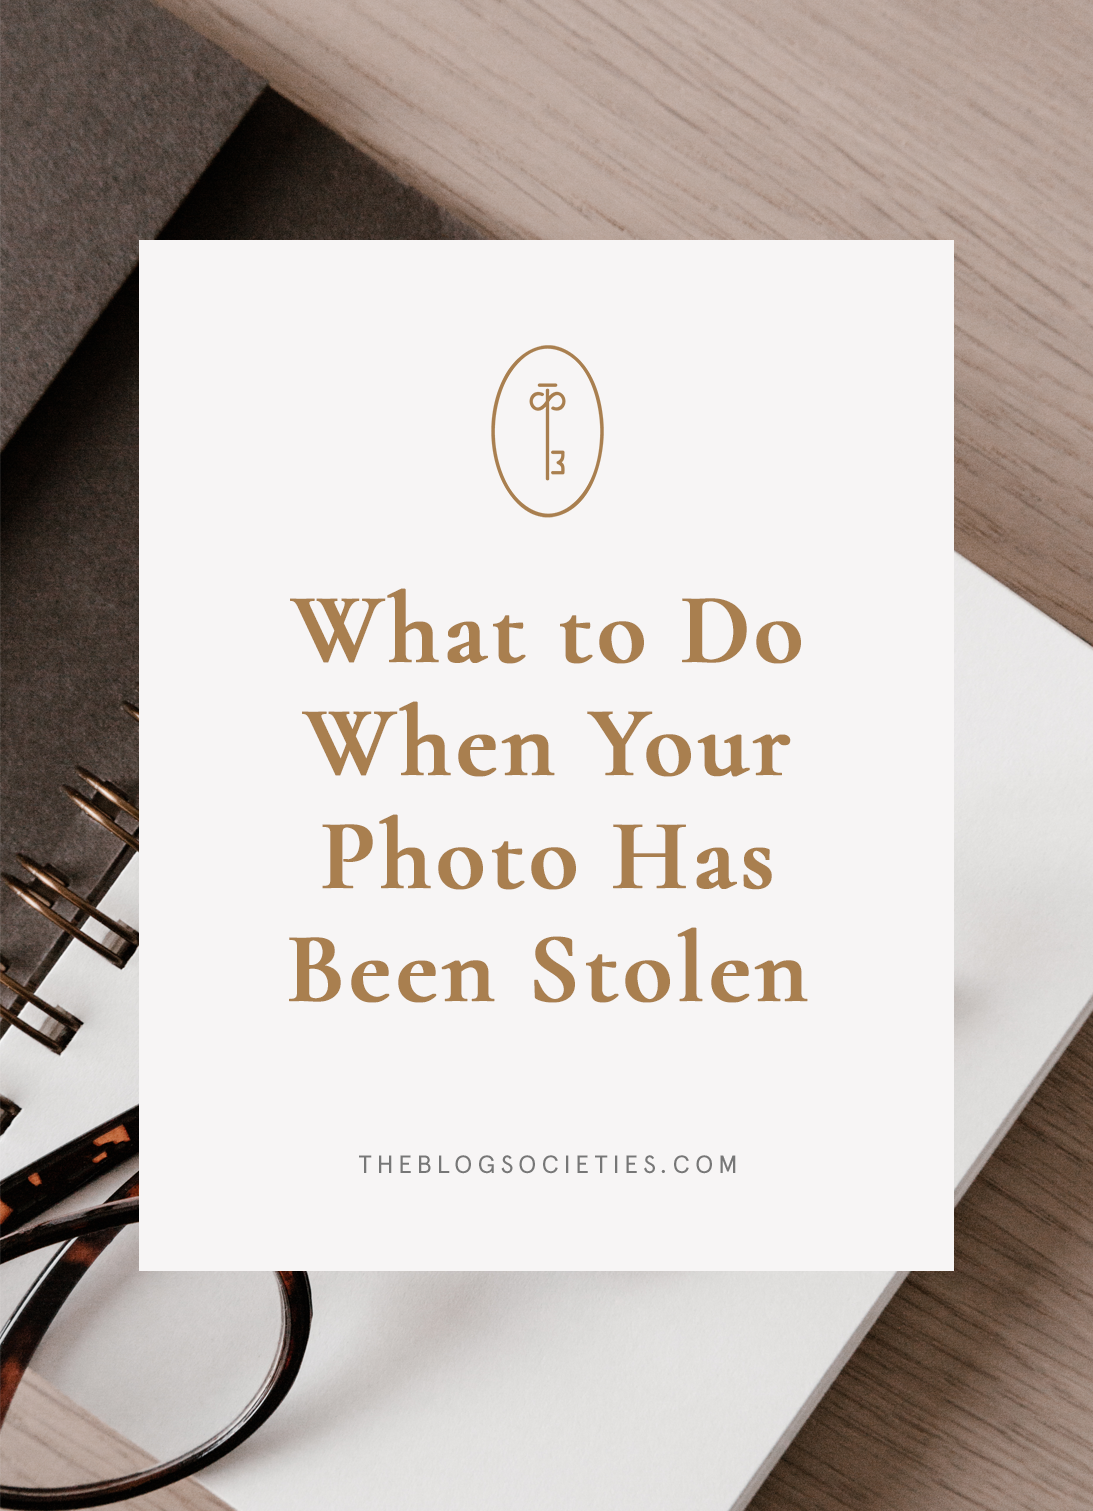 What to Do When Your Photo Has Been Stolen | The Blog Societies